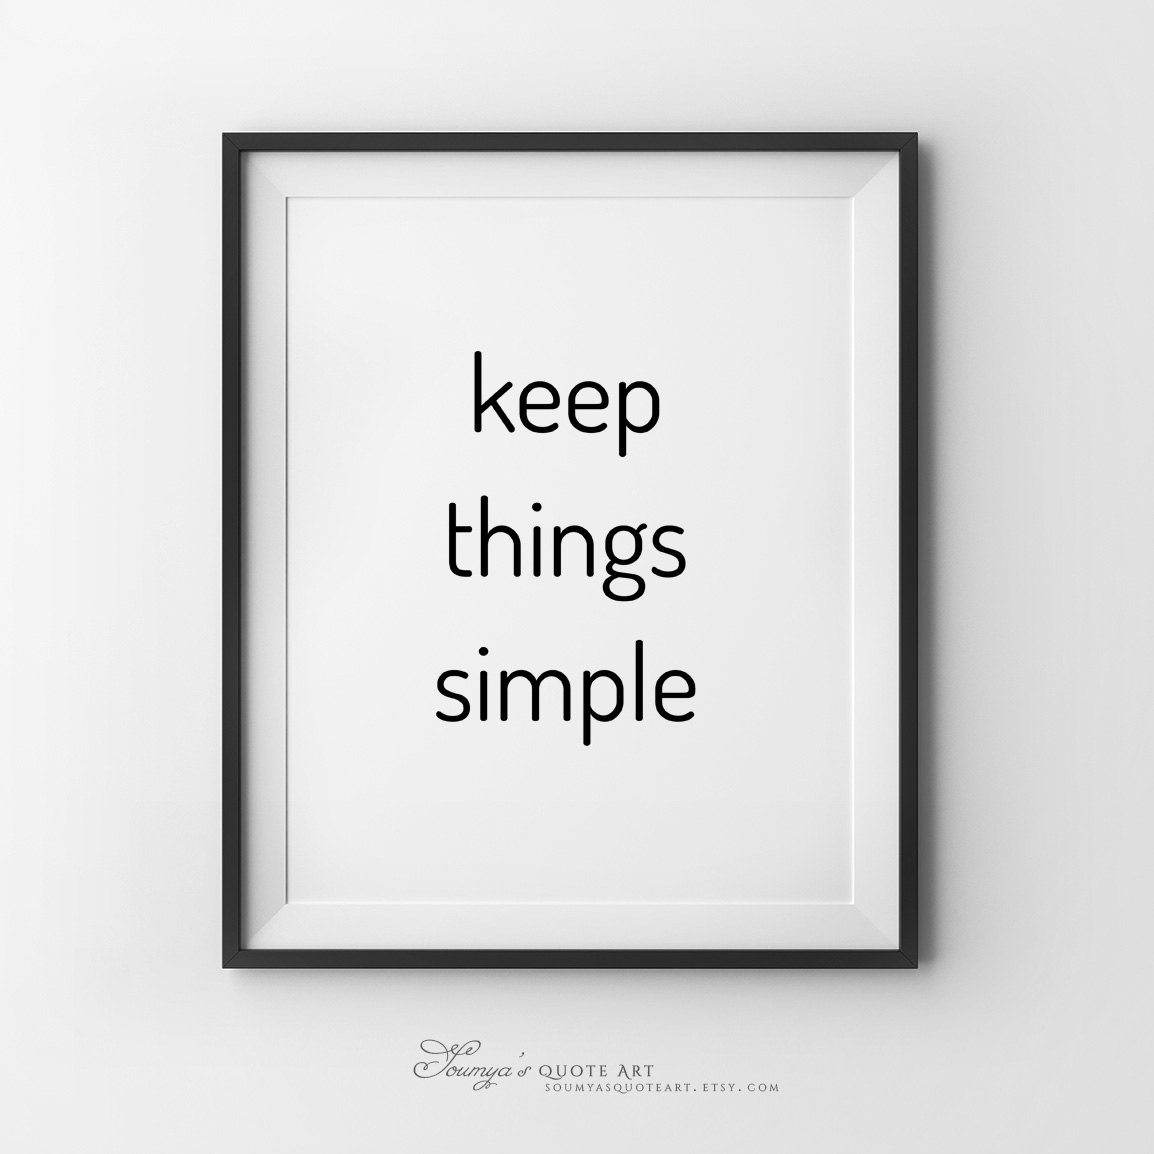 Simplify Life Quotes 70 Simplicity Quotes Sayings About Being Simple